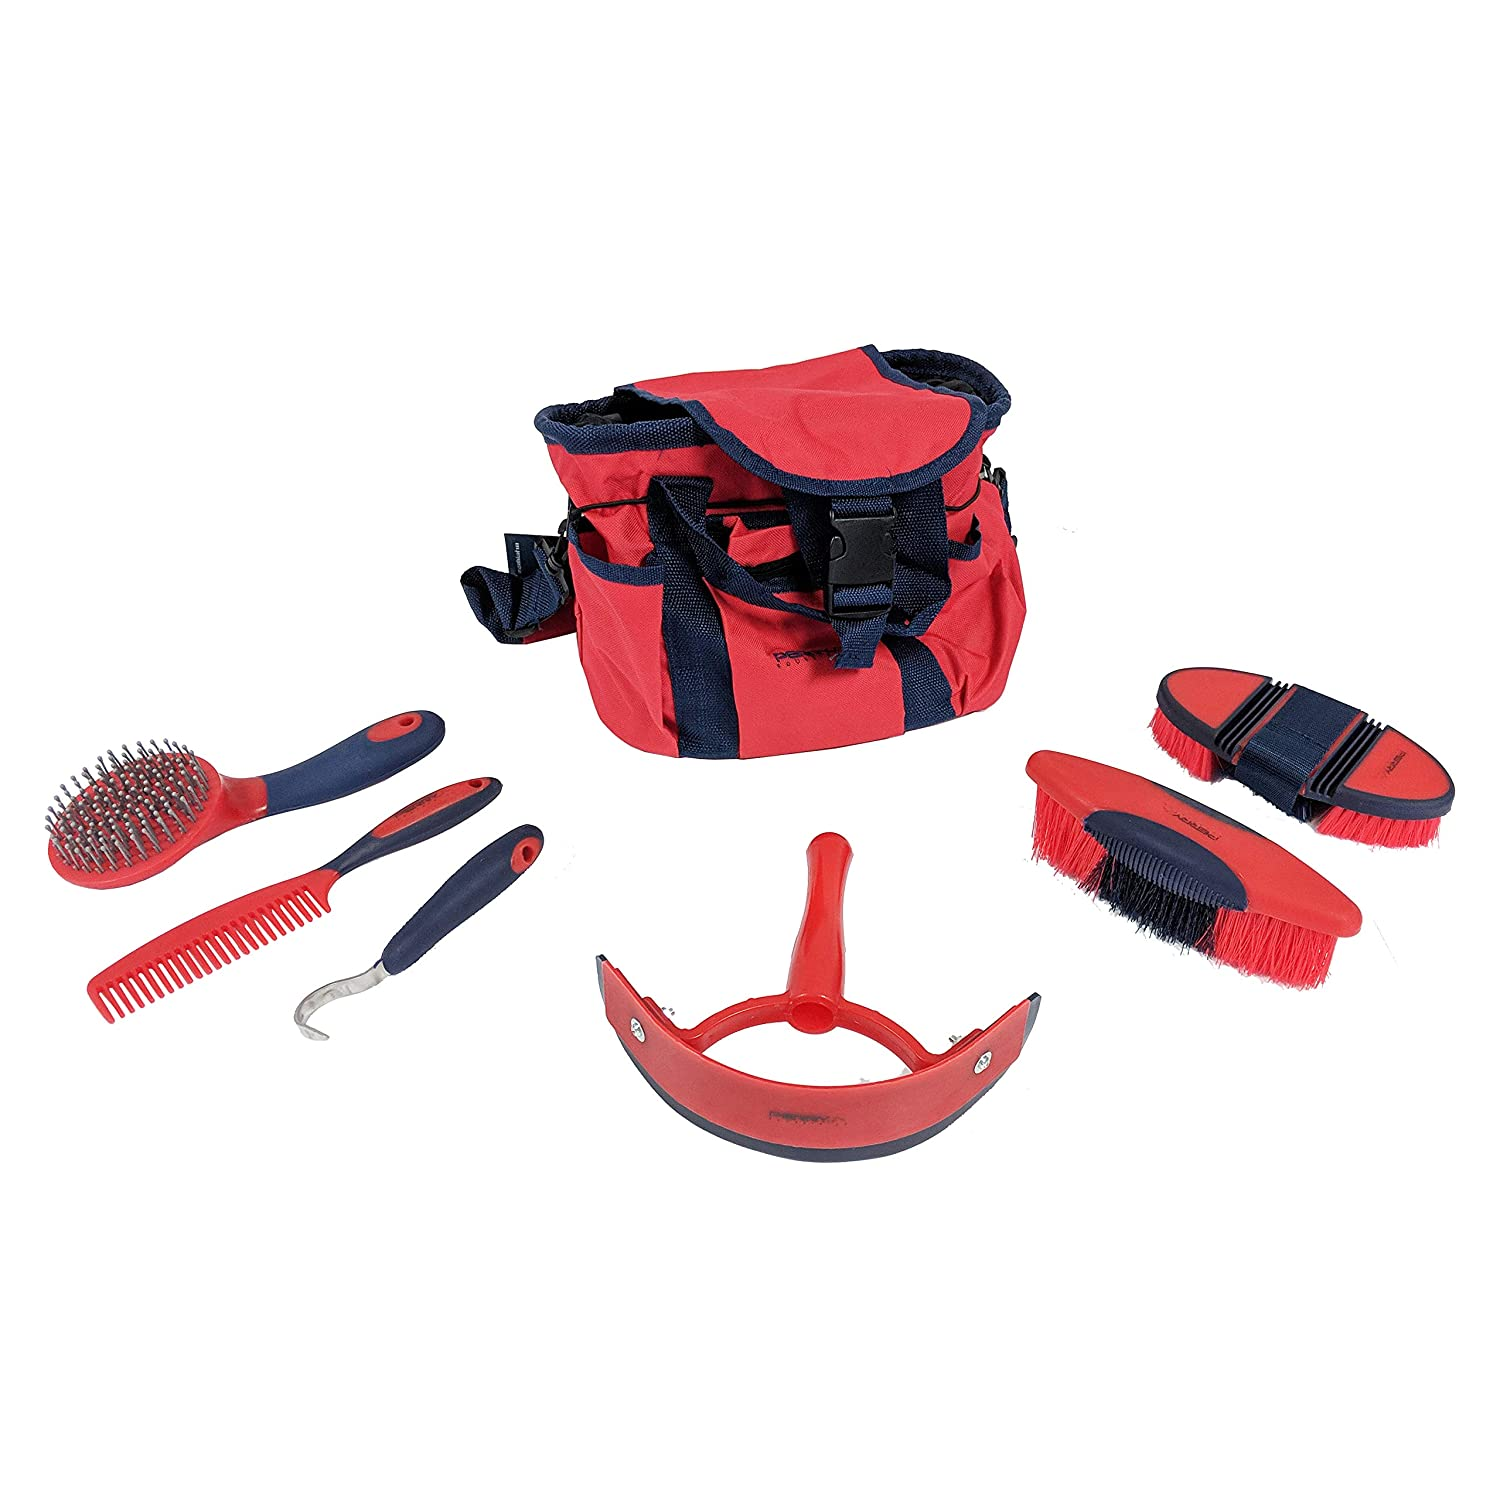 Perry Equestrian 6 Piece Horse//Pony Grooming Kit with Bag 4 Colours Gift Idea Blue